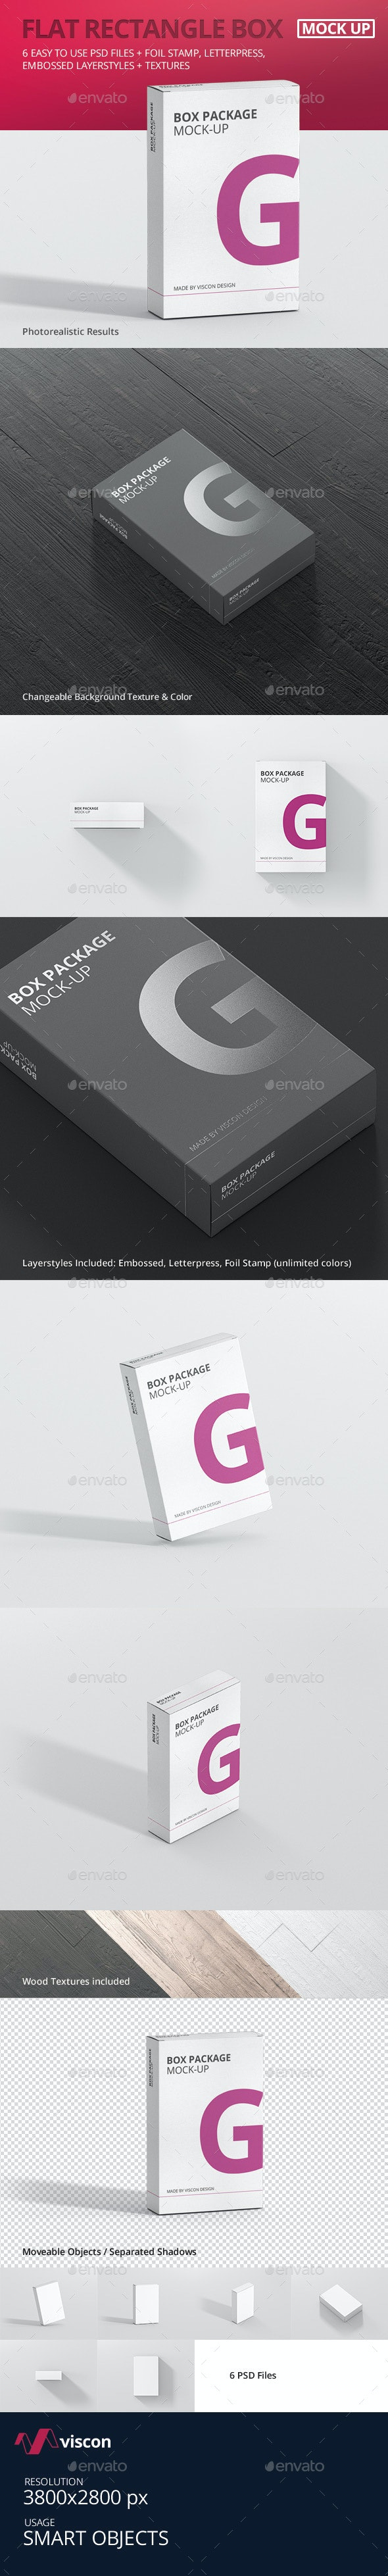 Package Box Mock-Up - Flat Rectangle - Miscellaneous Packaging